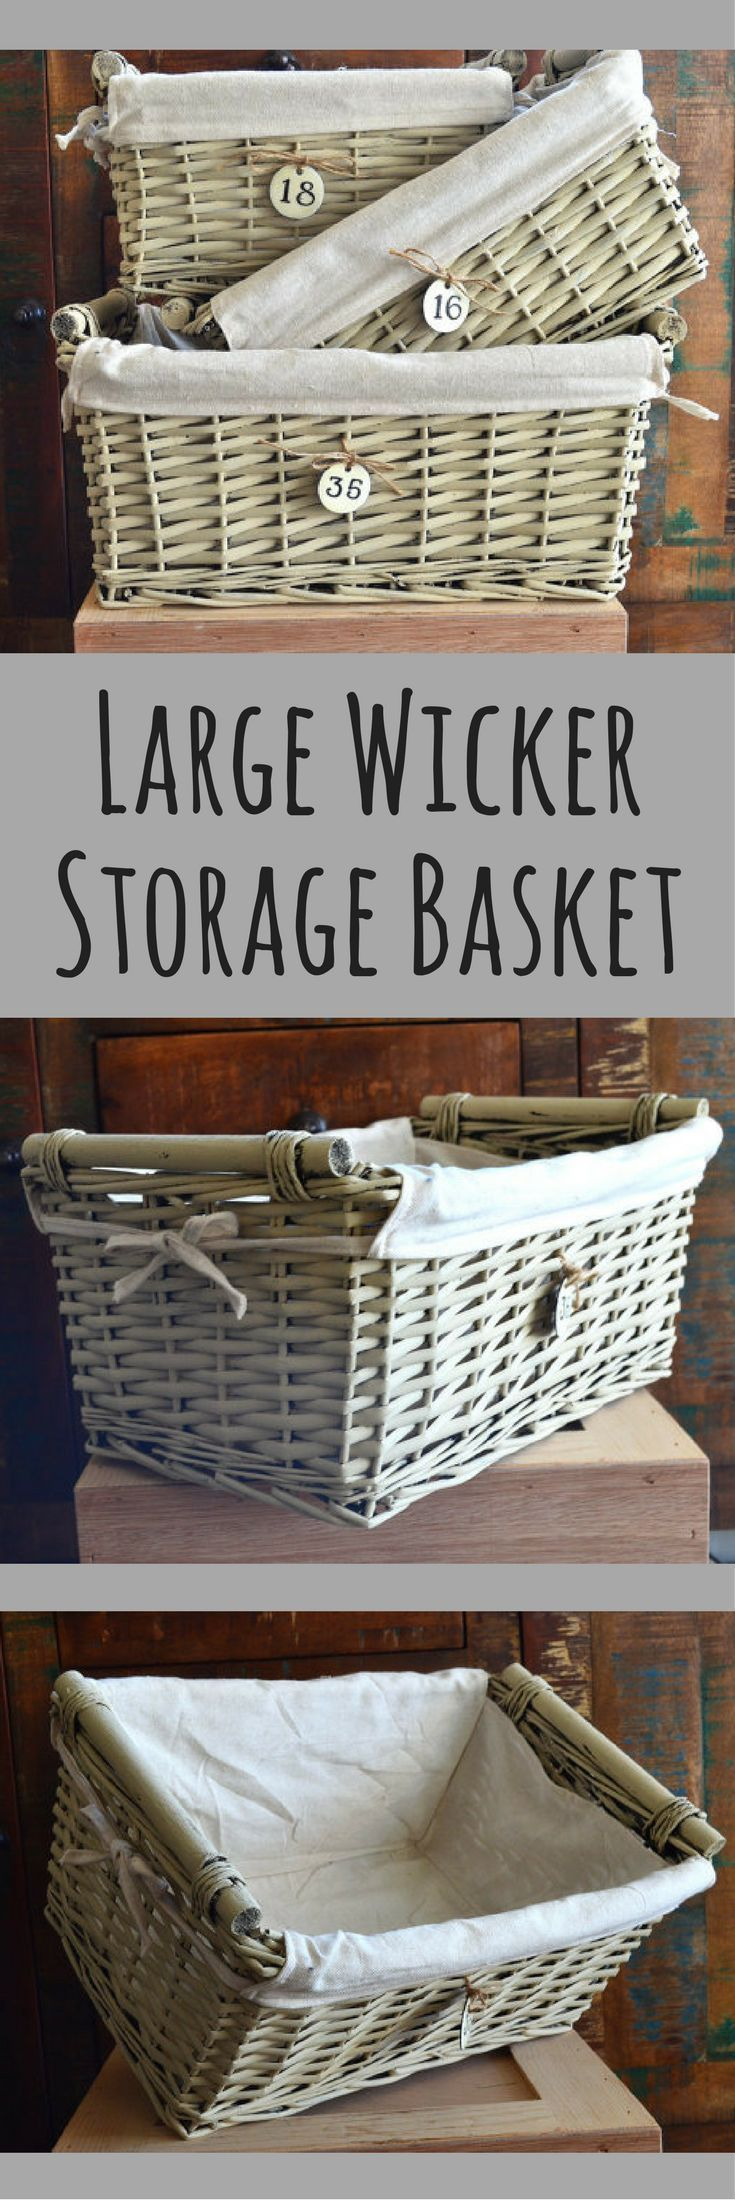 Large Wicker Storage Basket With Liner And Metal Number Tag Handmade Hand Painted Muslin Neutral Decor Farmhouse Nursery